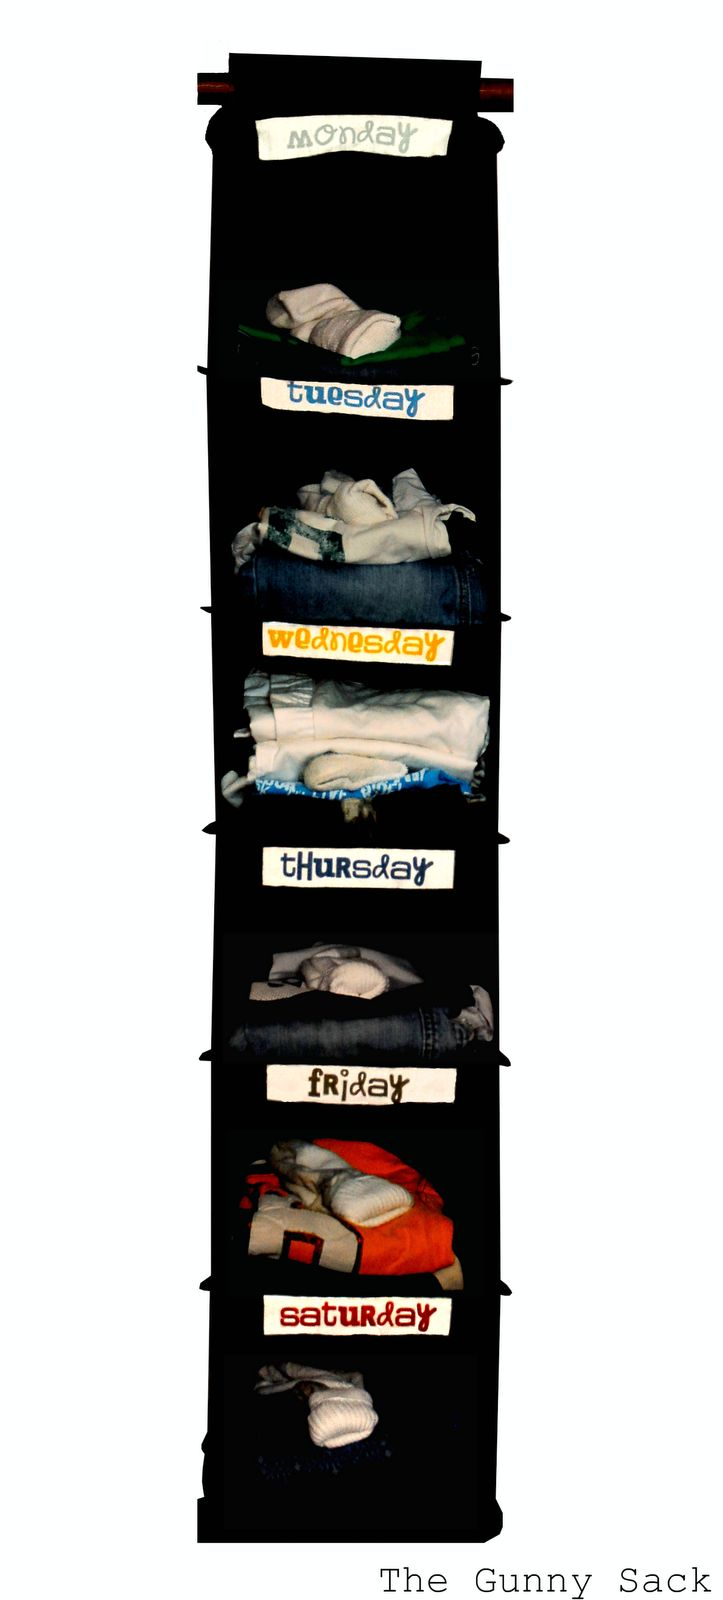 Organize outfits for the week. Saves time in the morning. I already have a pink one that would be perfect for this.